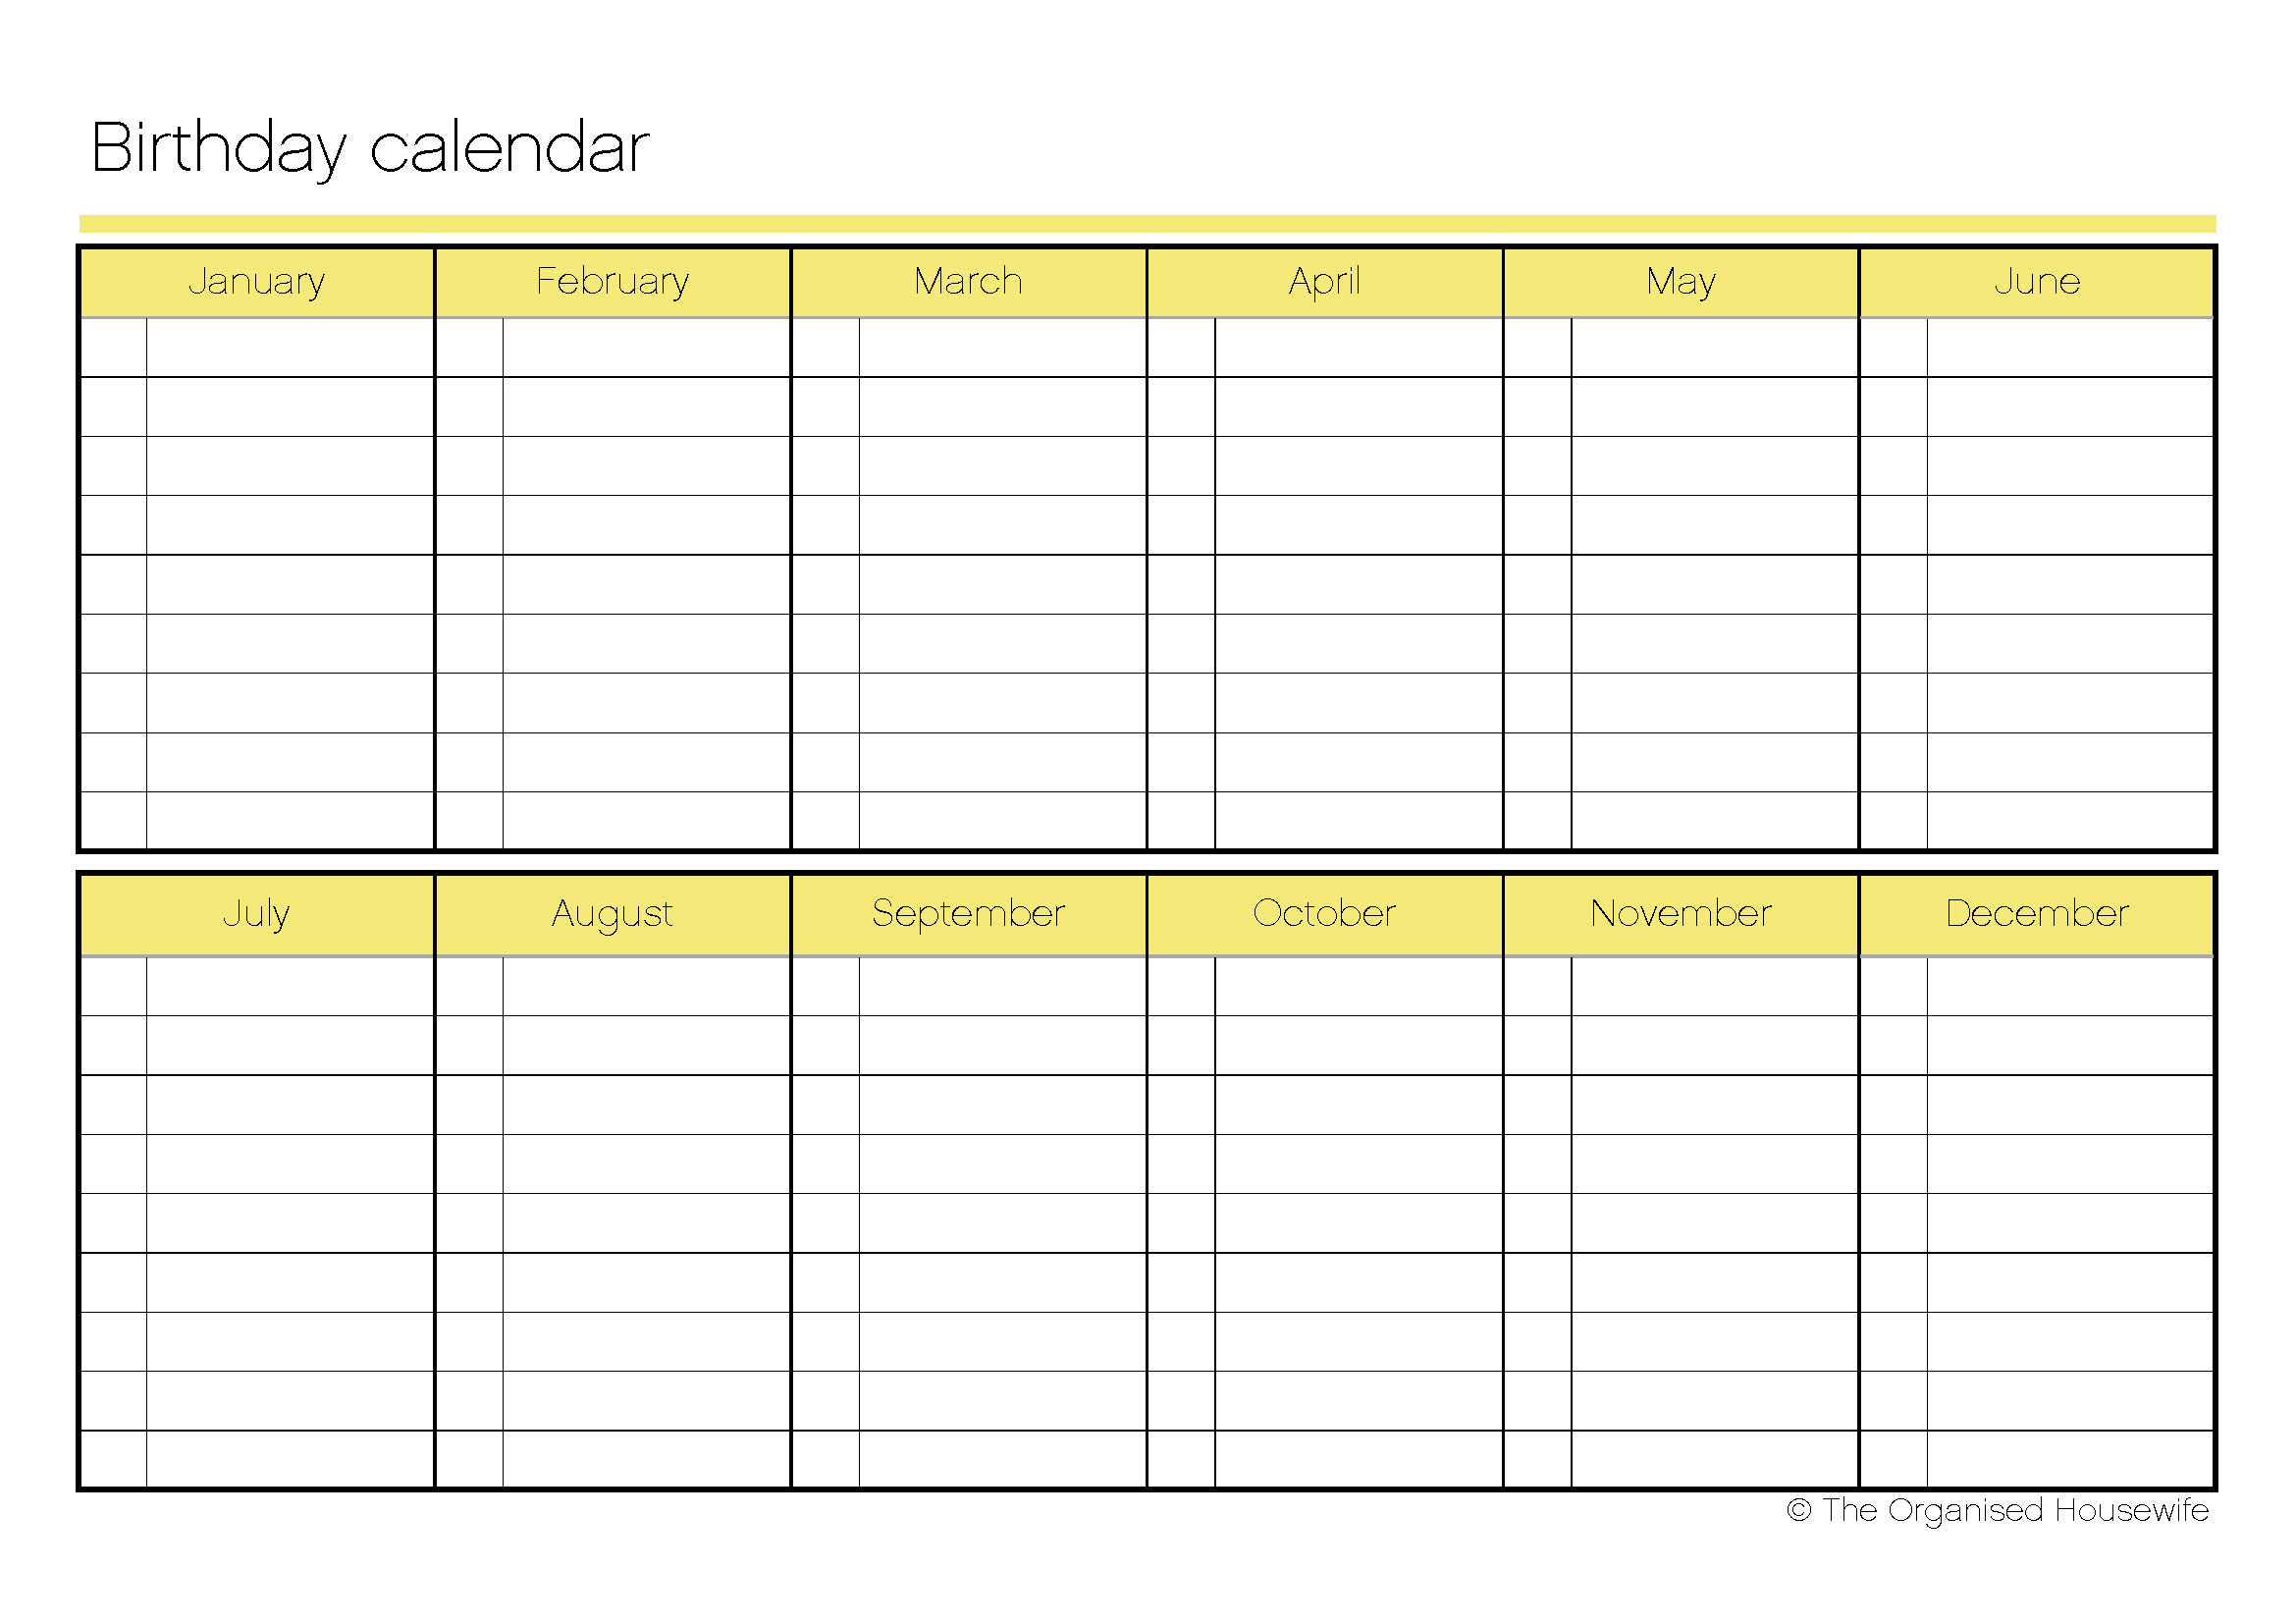 Printable} Birthday Calendar – The Organised Housewife